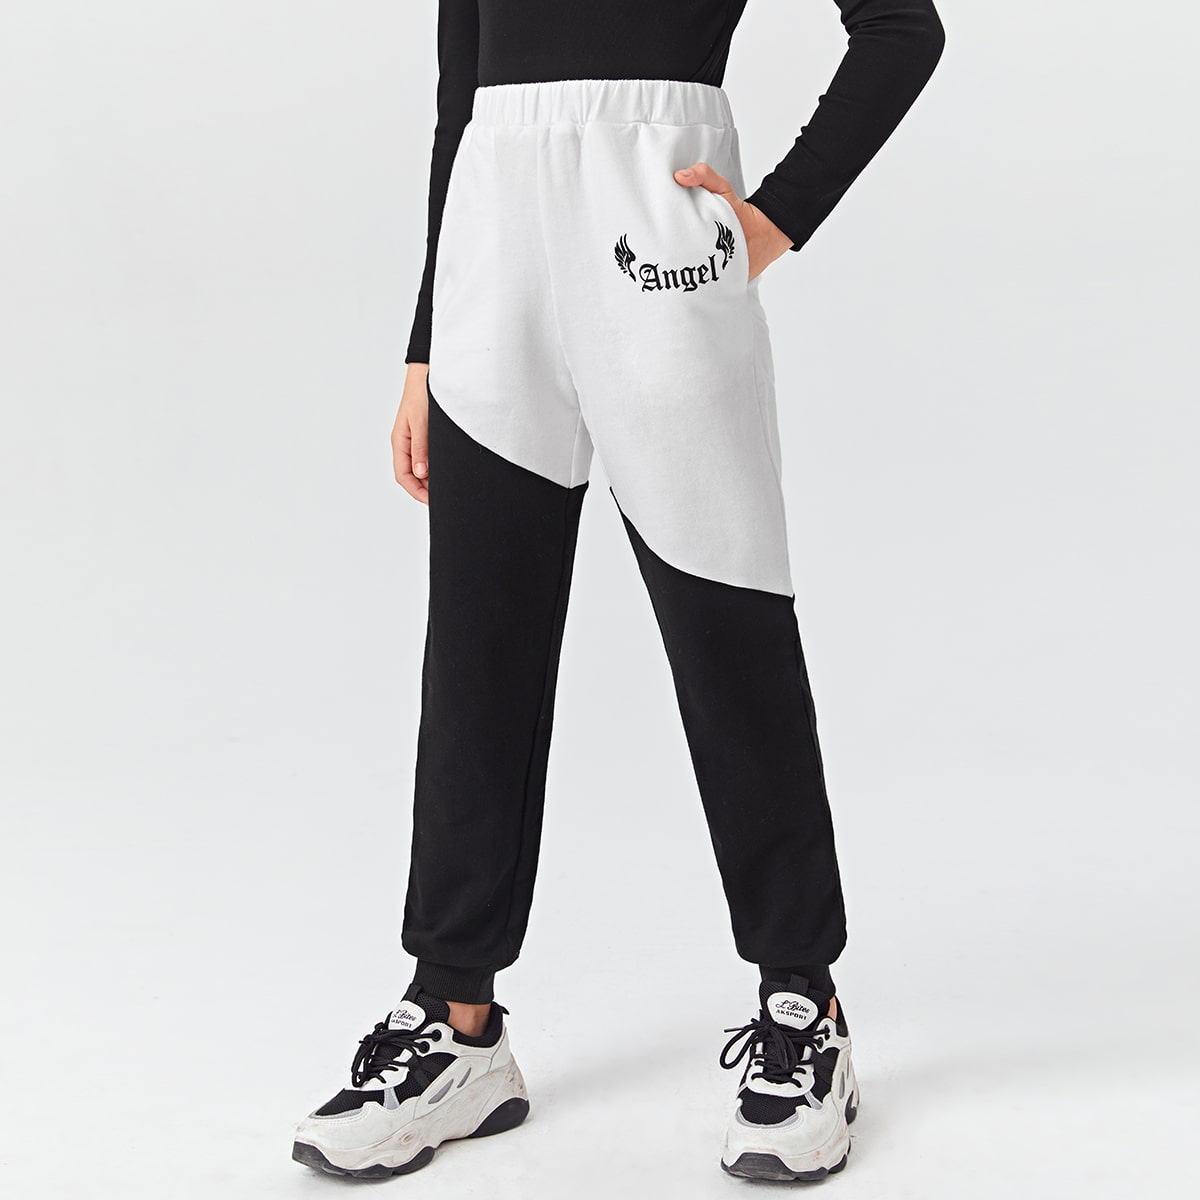 Girls Letter Graphic Colorblock Sweatpants, SHEIN  - buy with discount